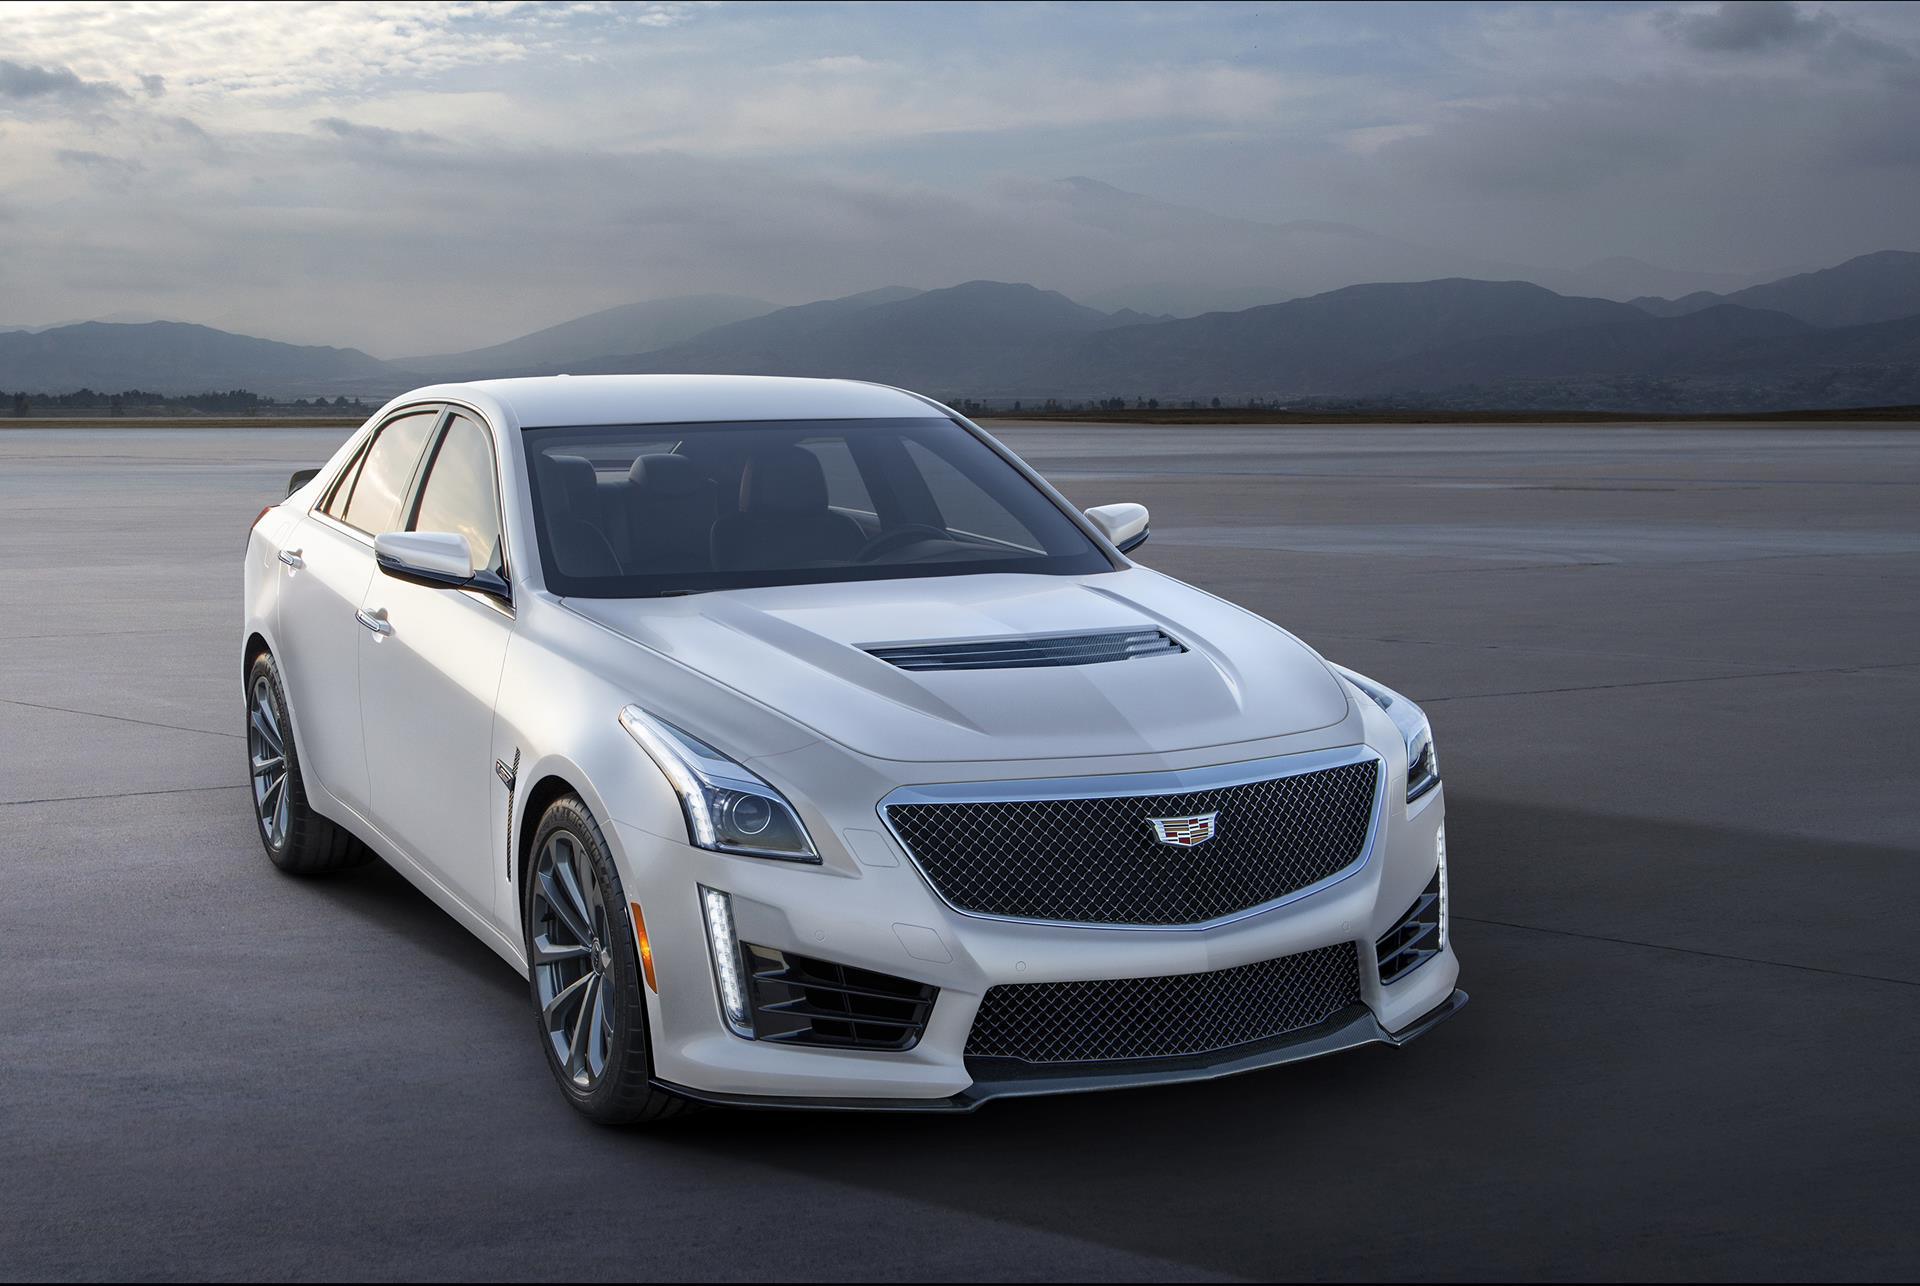 2016 Cadillac CTS-V White Frost Edition pictures and wallpaper